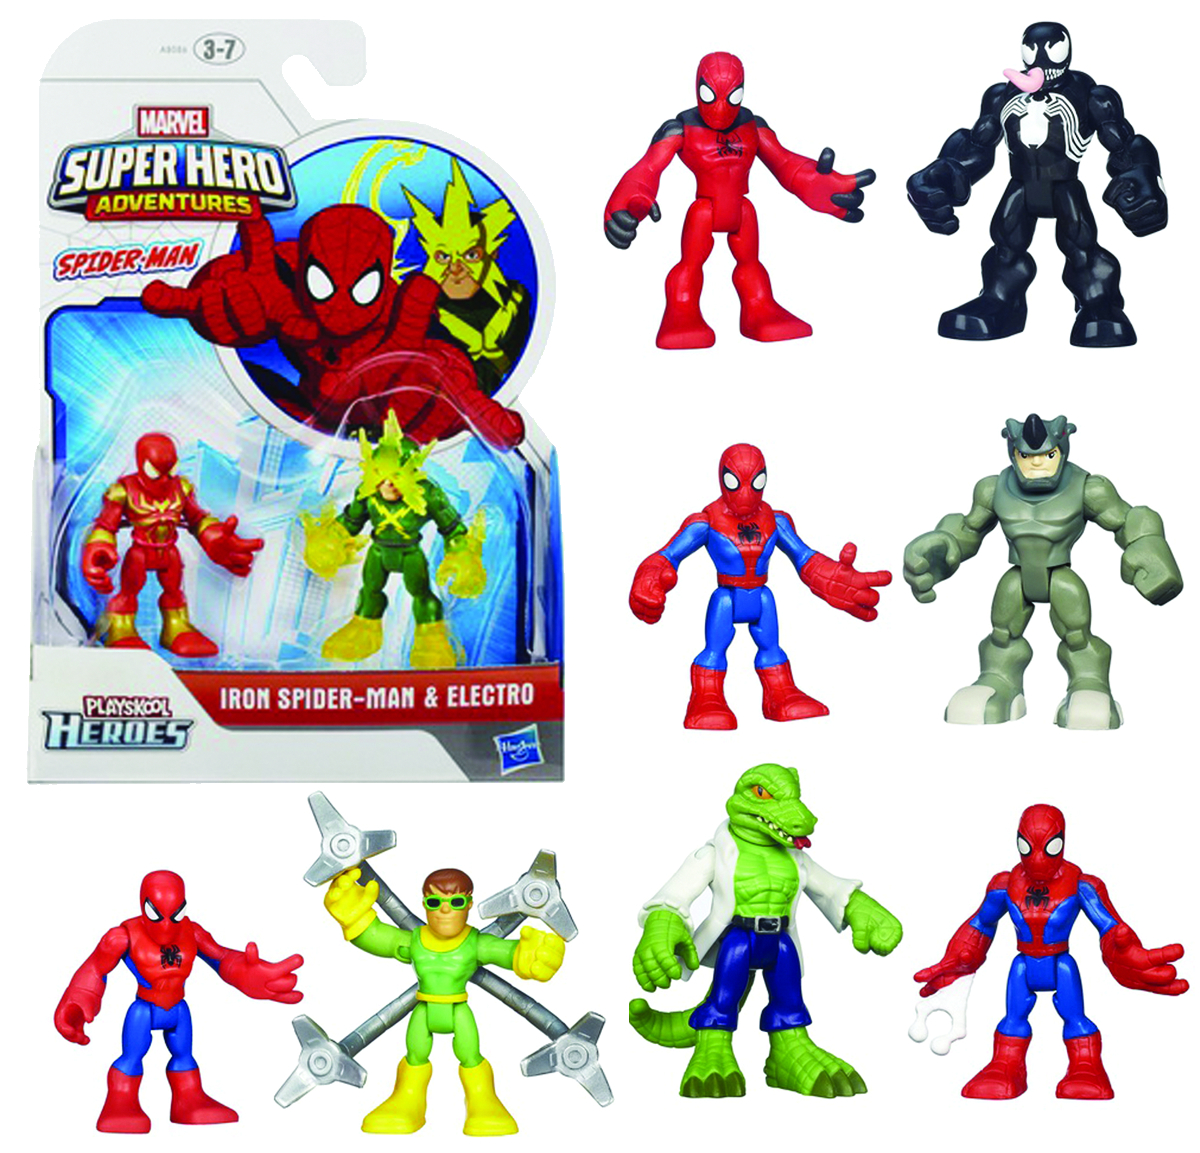 SPIDER-MAN SUPER HERO ADV FIG 2PK ASST